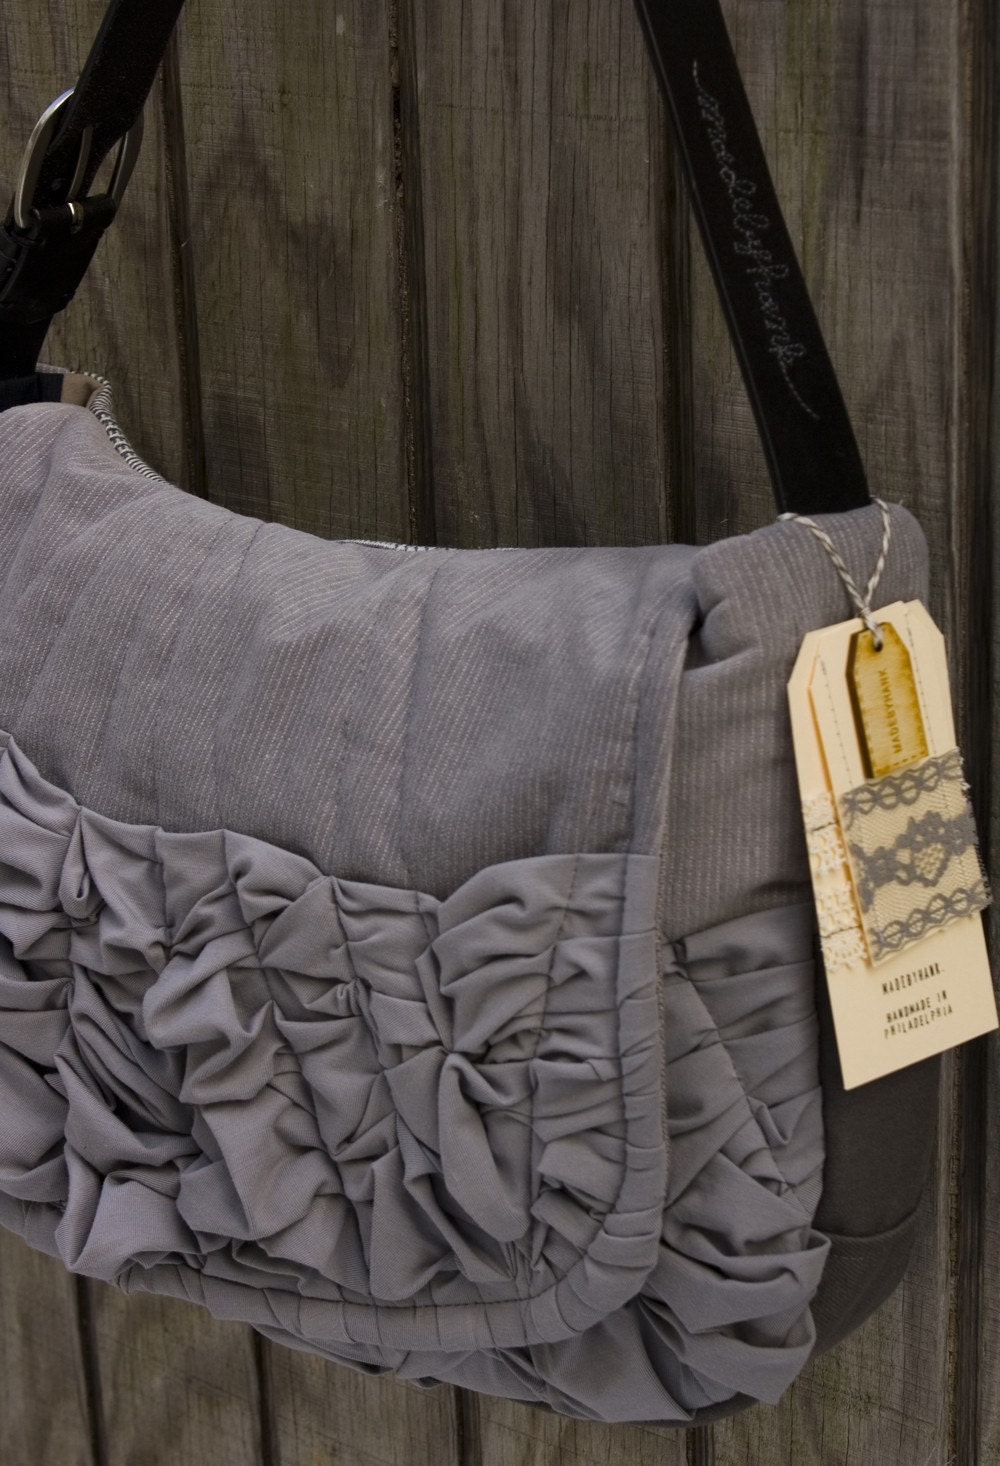 OOAK-- a large tough ruffles shoulder bag in two shades of grey (black leather adjustable strap)